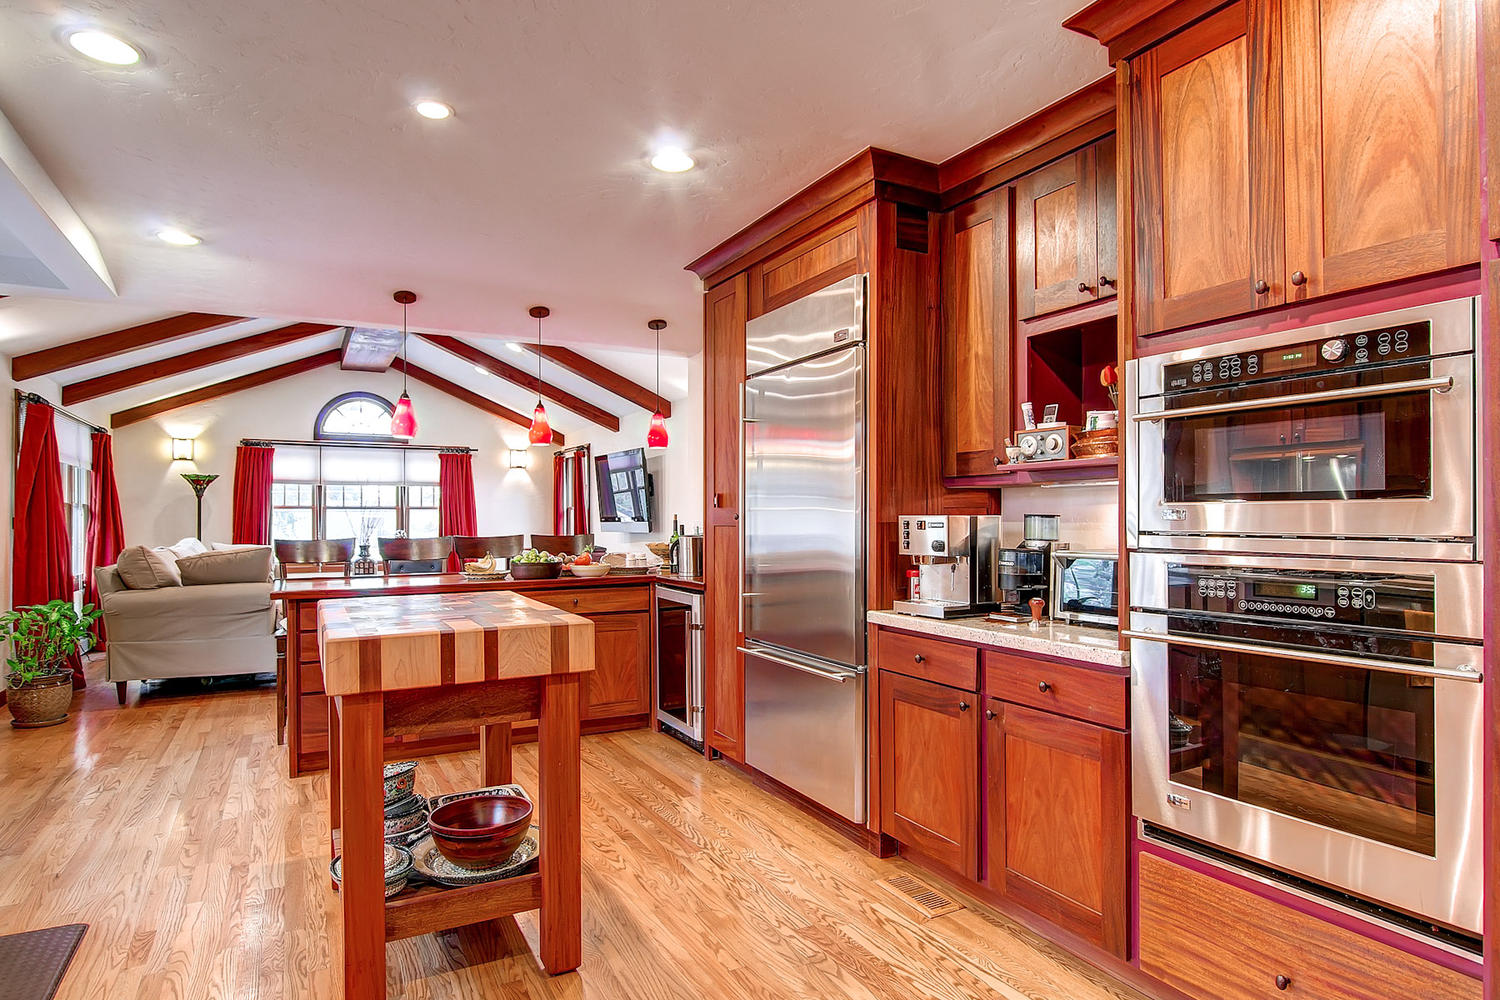 Kitchen Remodeling | Home Remodeling, Home Renovations, Home ...